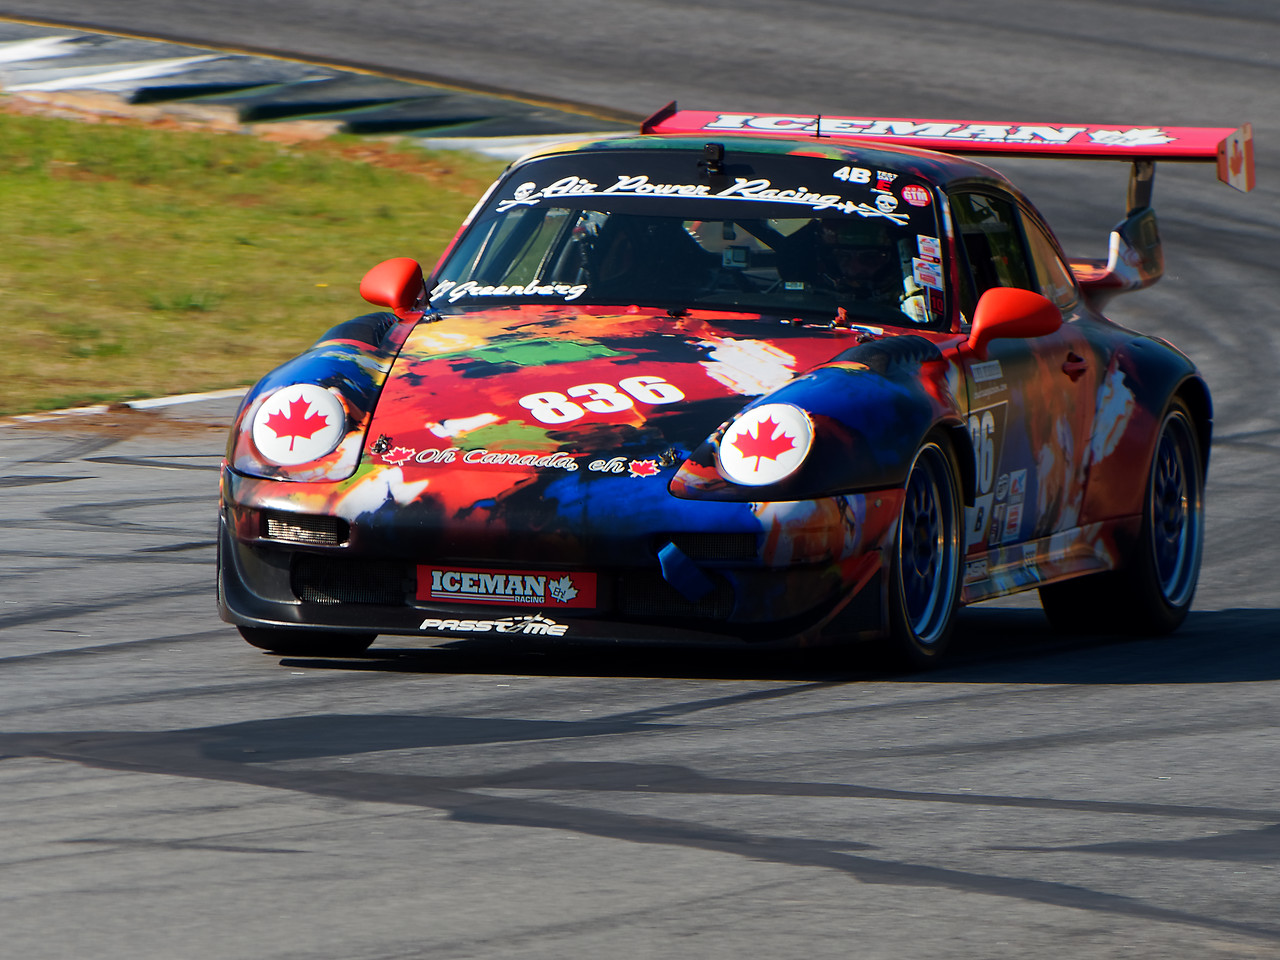 Beautiful Porsche flying Canadian Maple Leafs